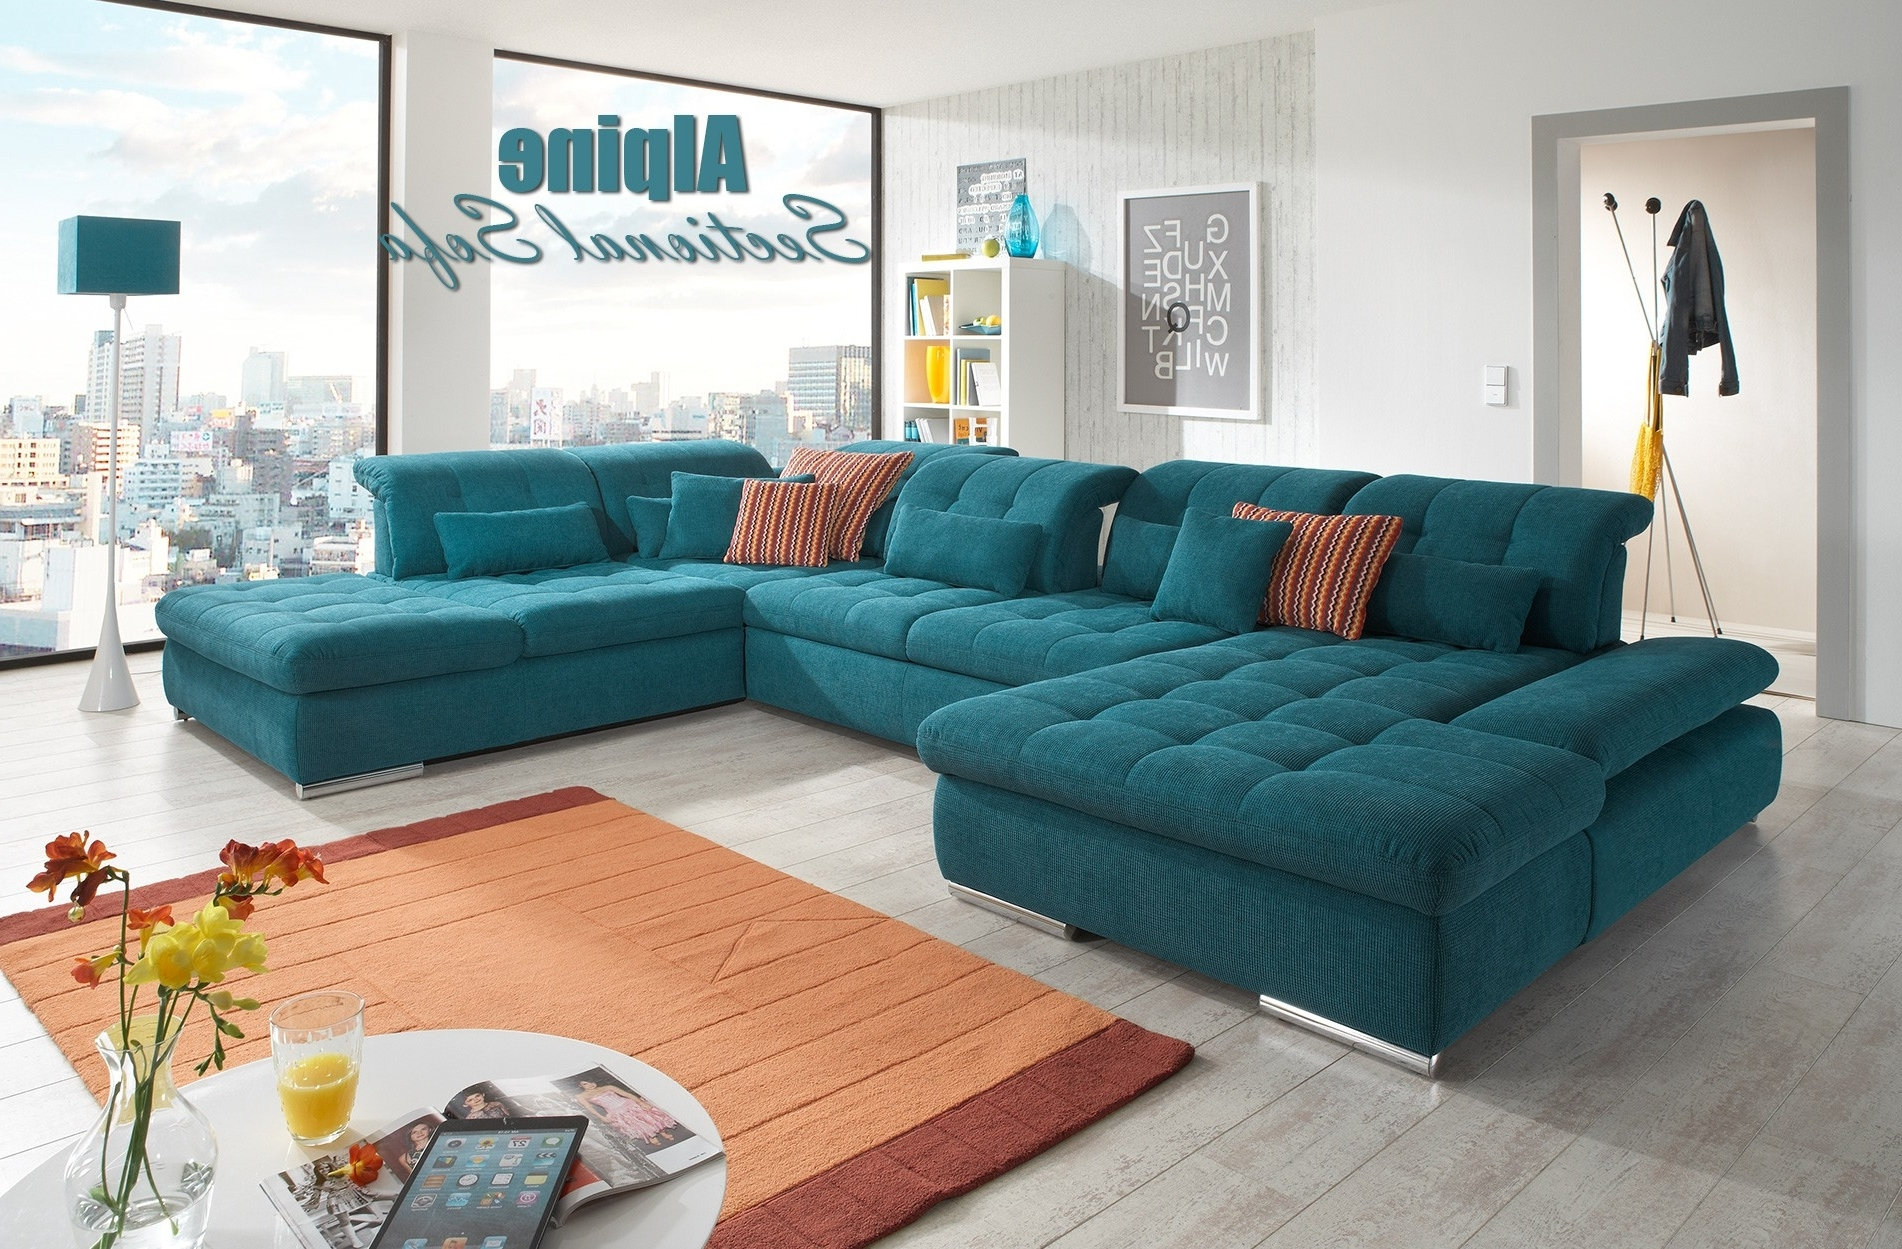 2019 Philadelphia Sectional Sofas With Alpine Sectional Sofa In Green Fabric (View 2 of 20)